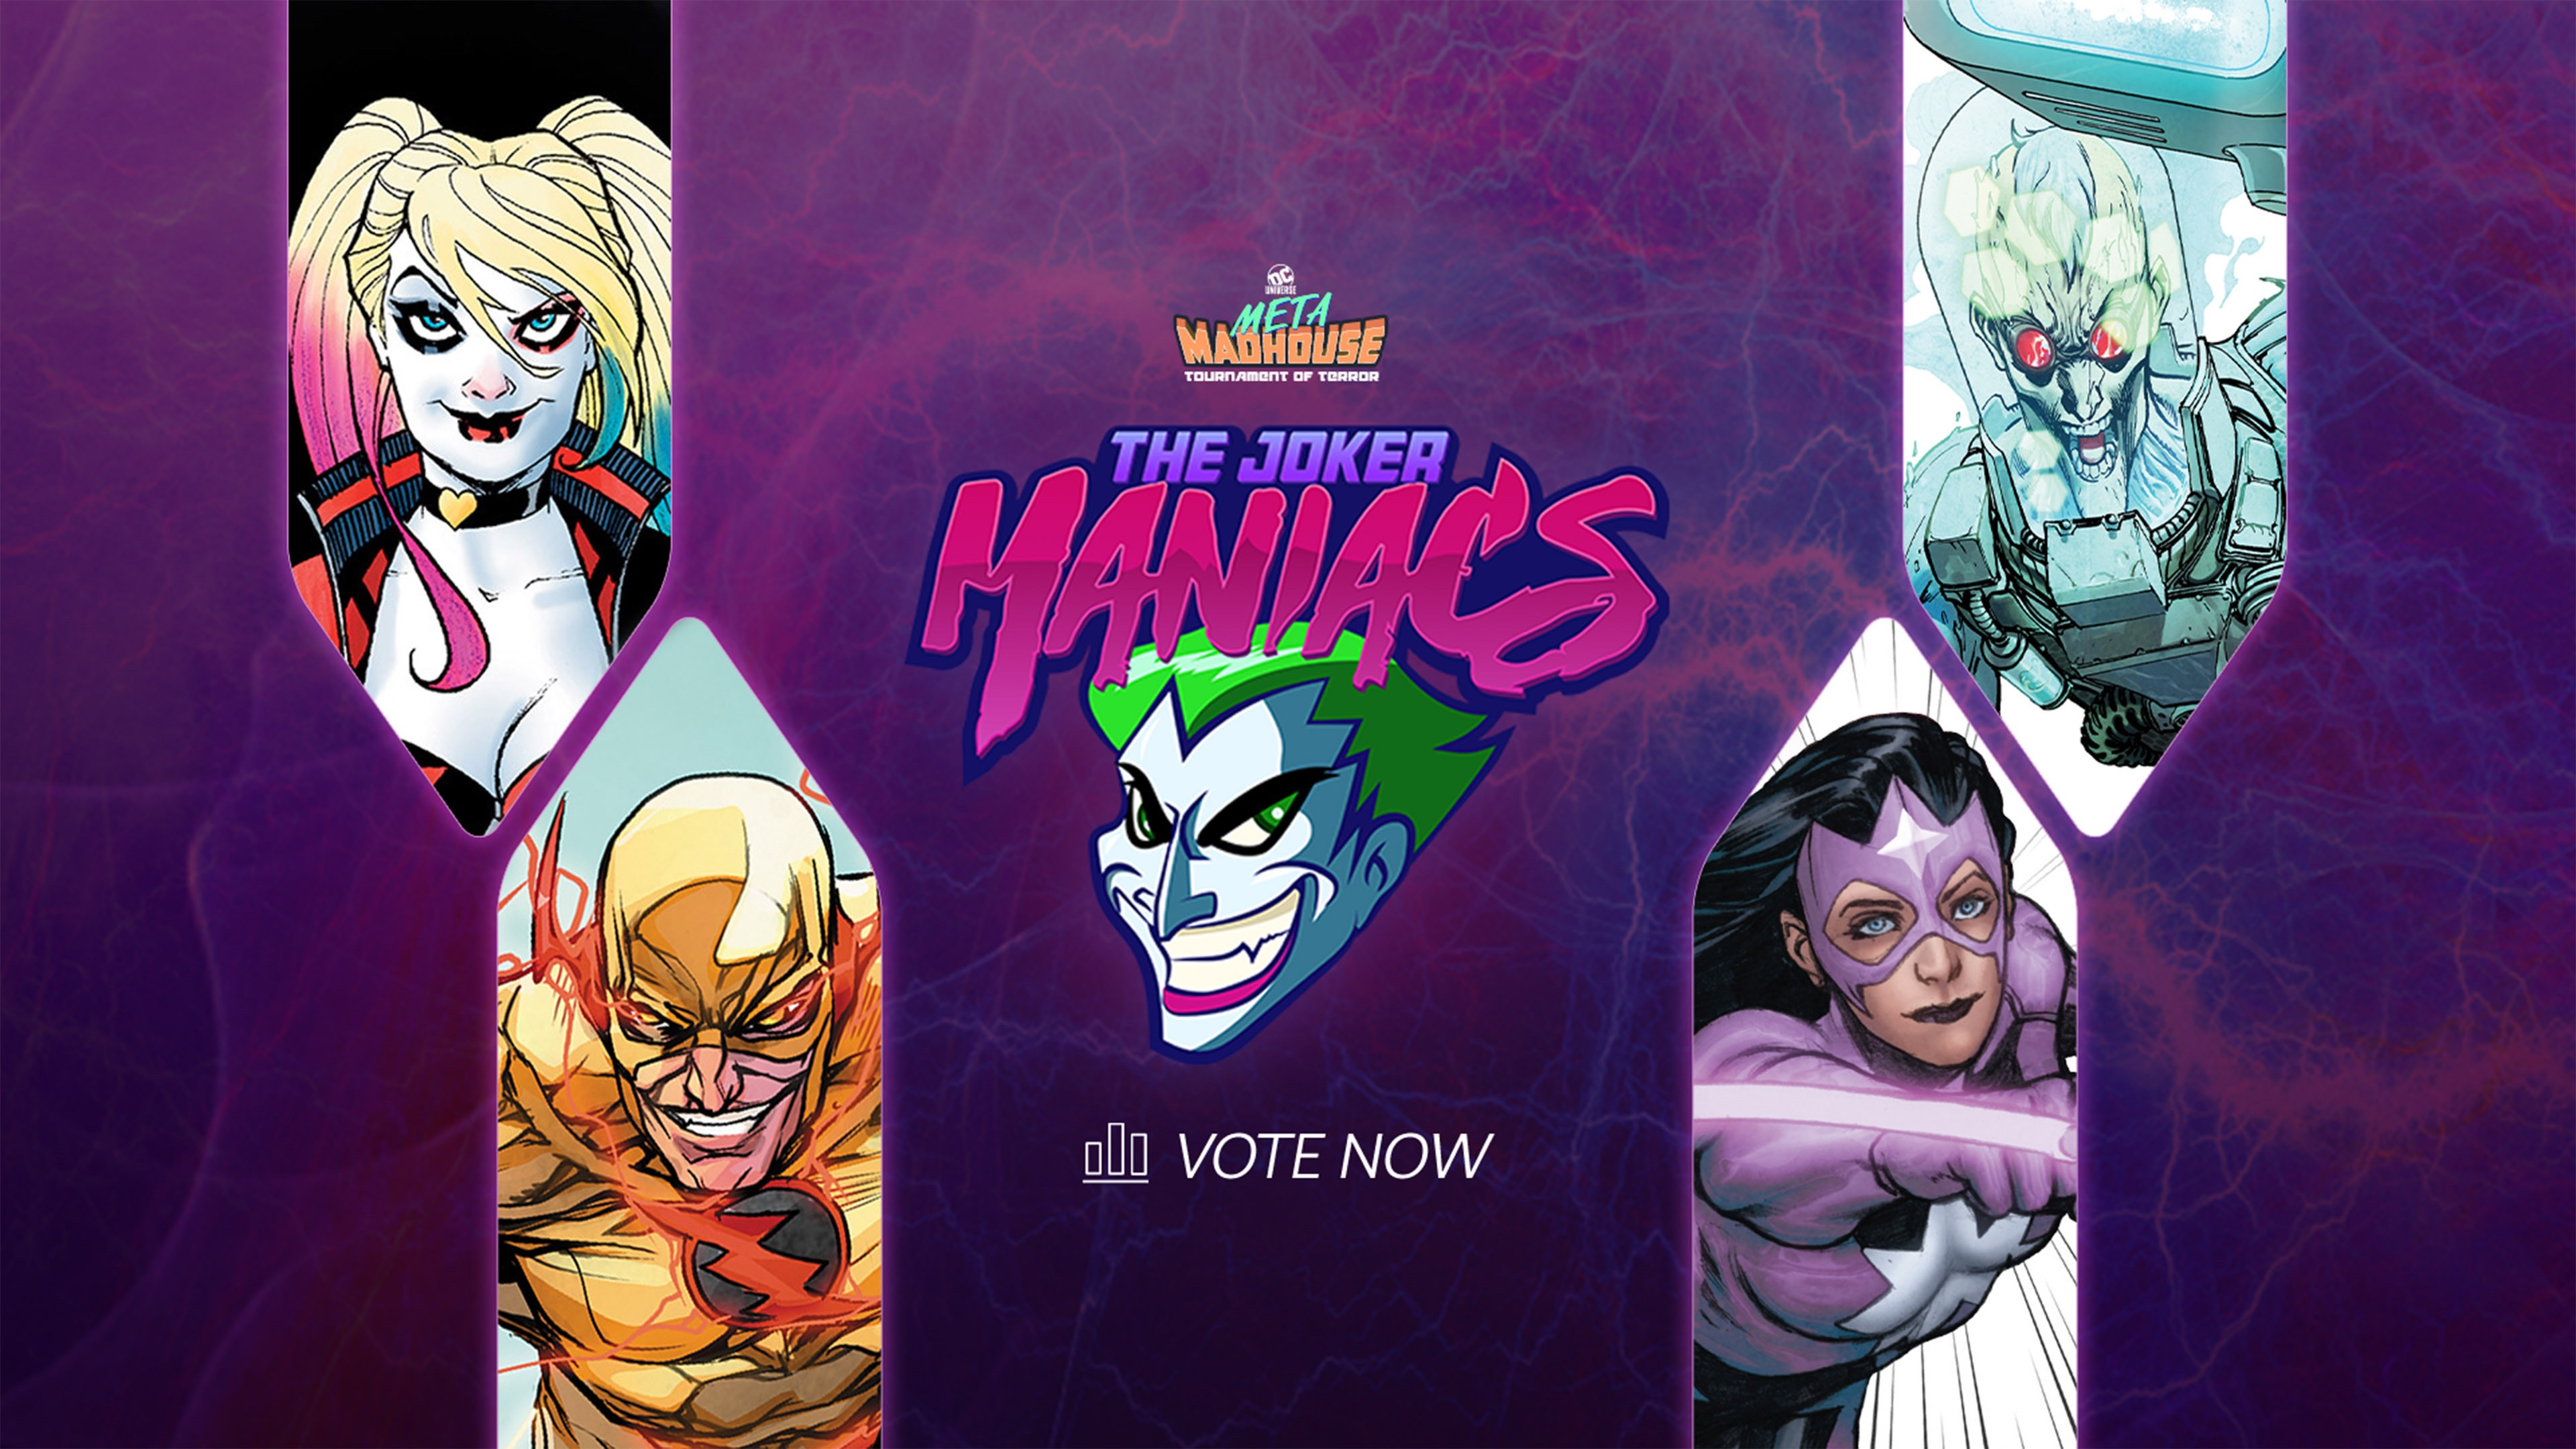 MM_JOKER VOTE_4 players_v2hero-c2 (update me).jpg